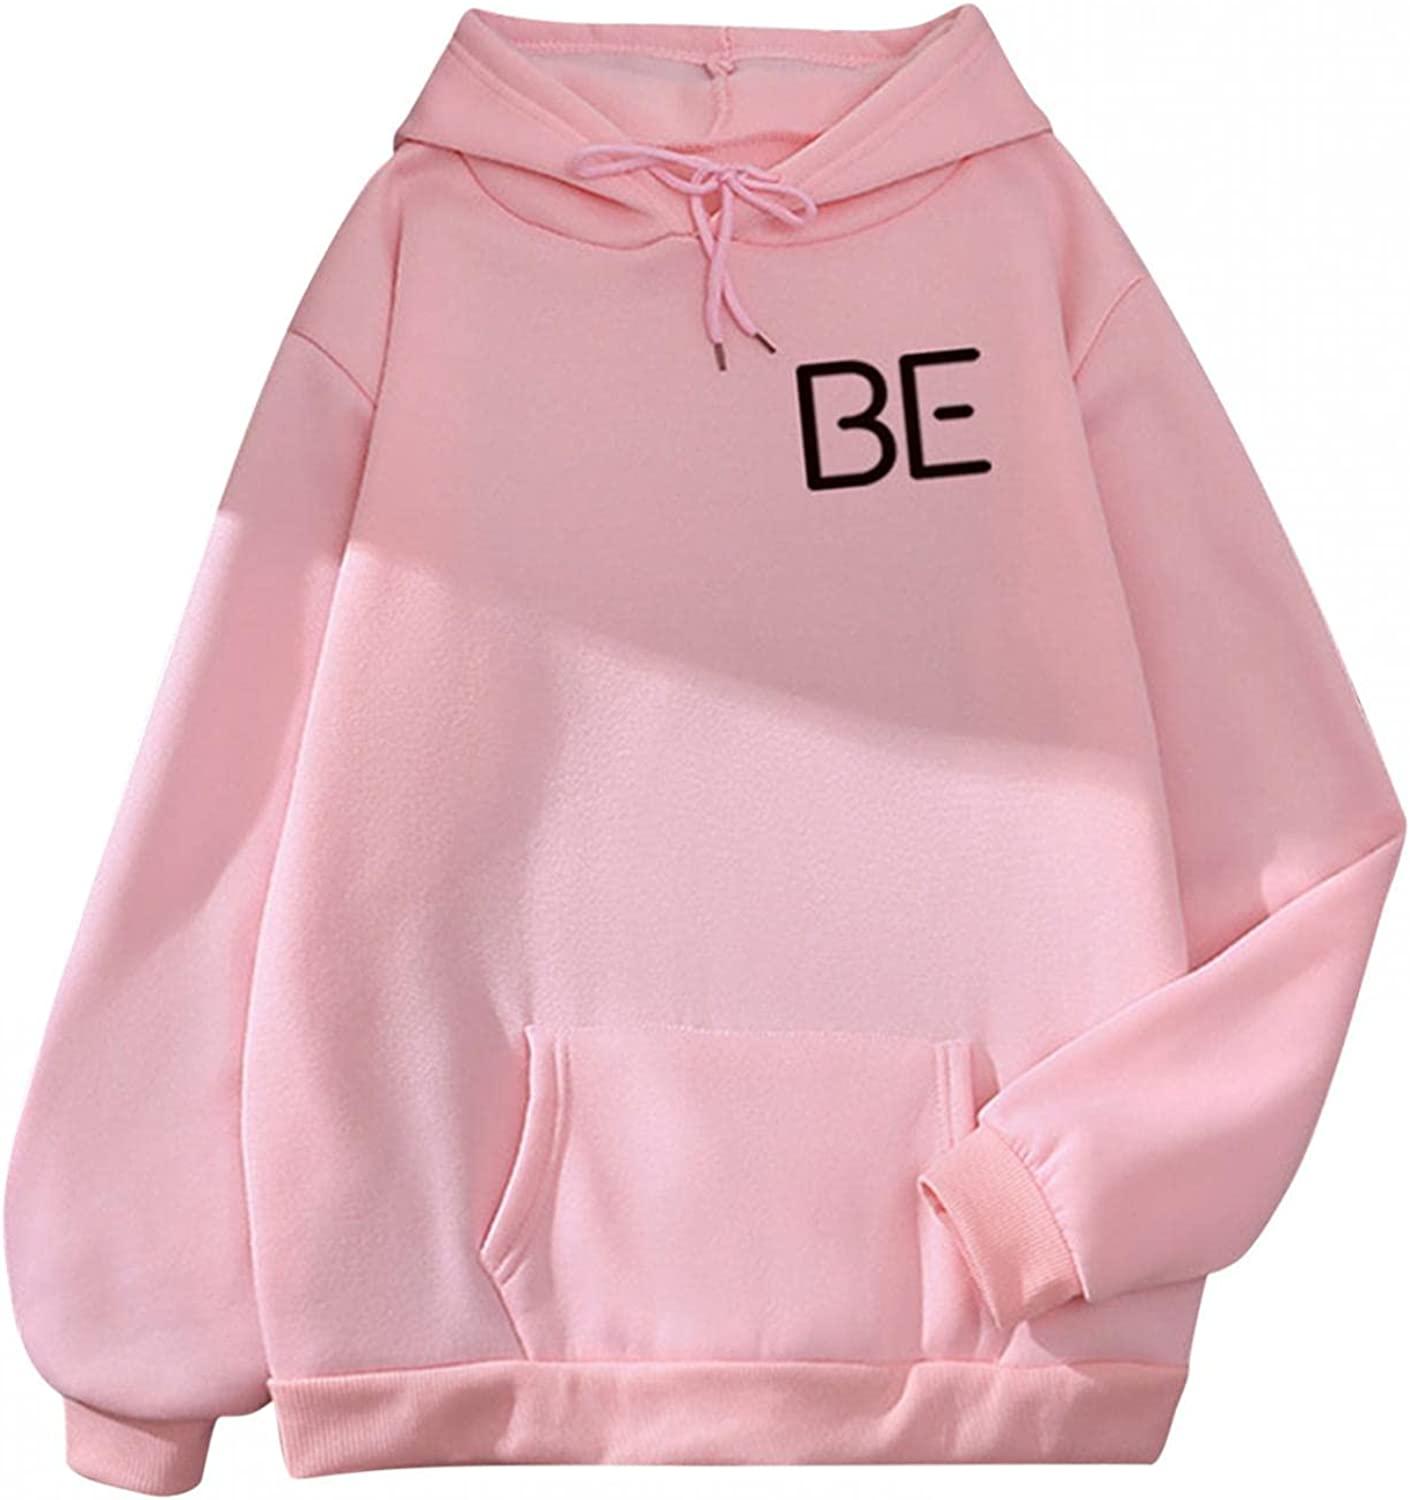 lucyouth Hoodies for Women Teens Girls Long Sleeve Casual Letter Print Pocket Cute Soft Pullover Sweatshirt Tops